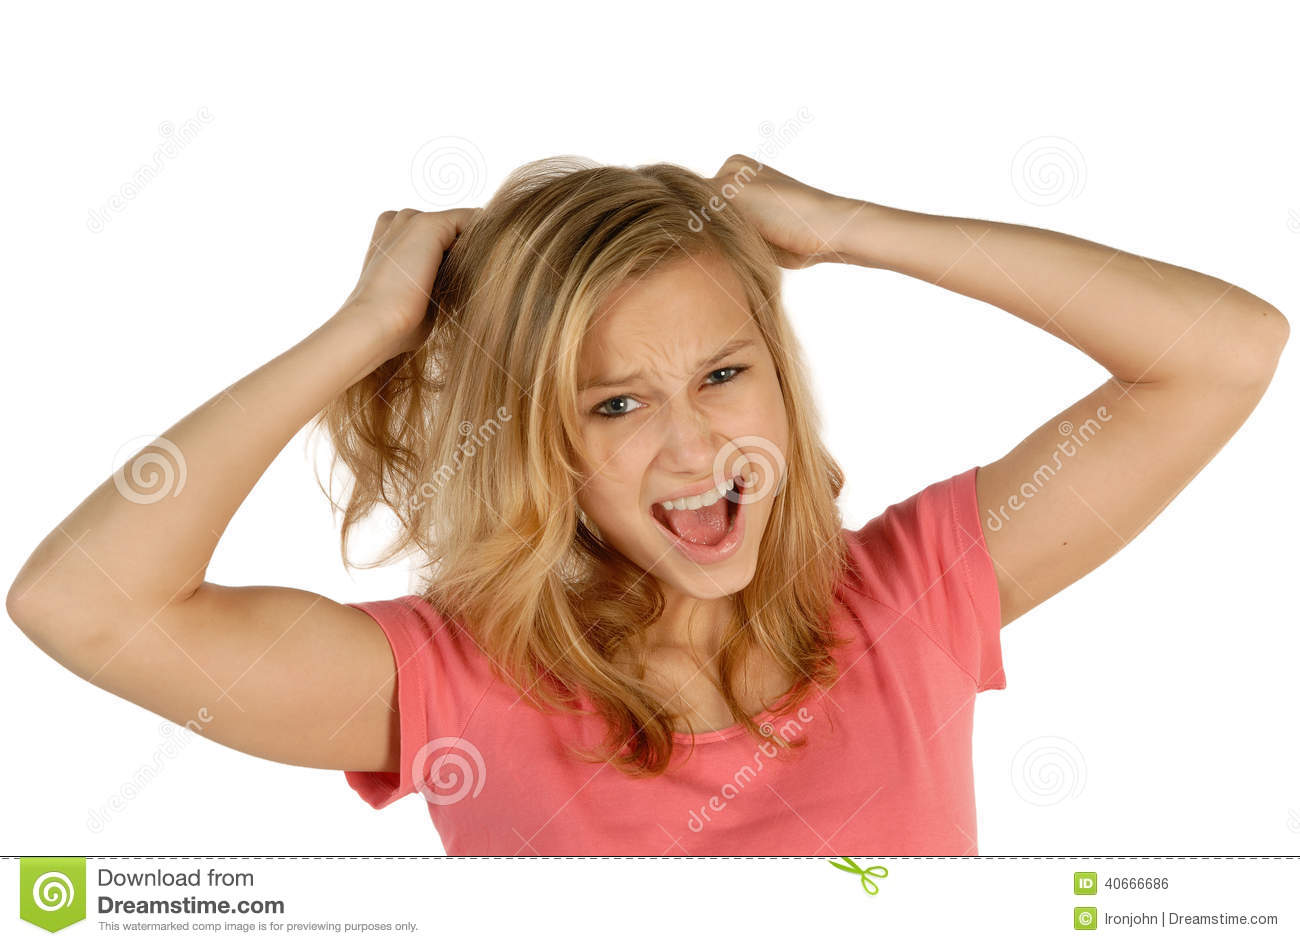 a4ef17a167c Angry Blonde Teen Stock Images - Download 354 Royalty Free Photos